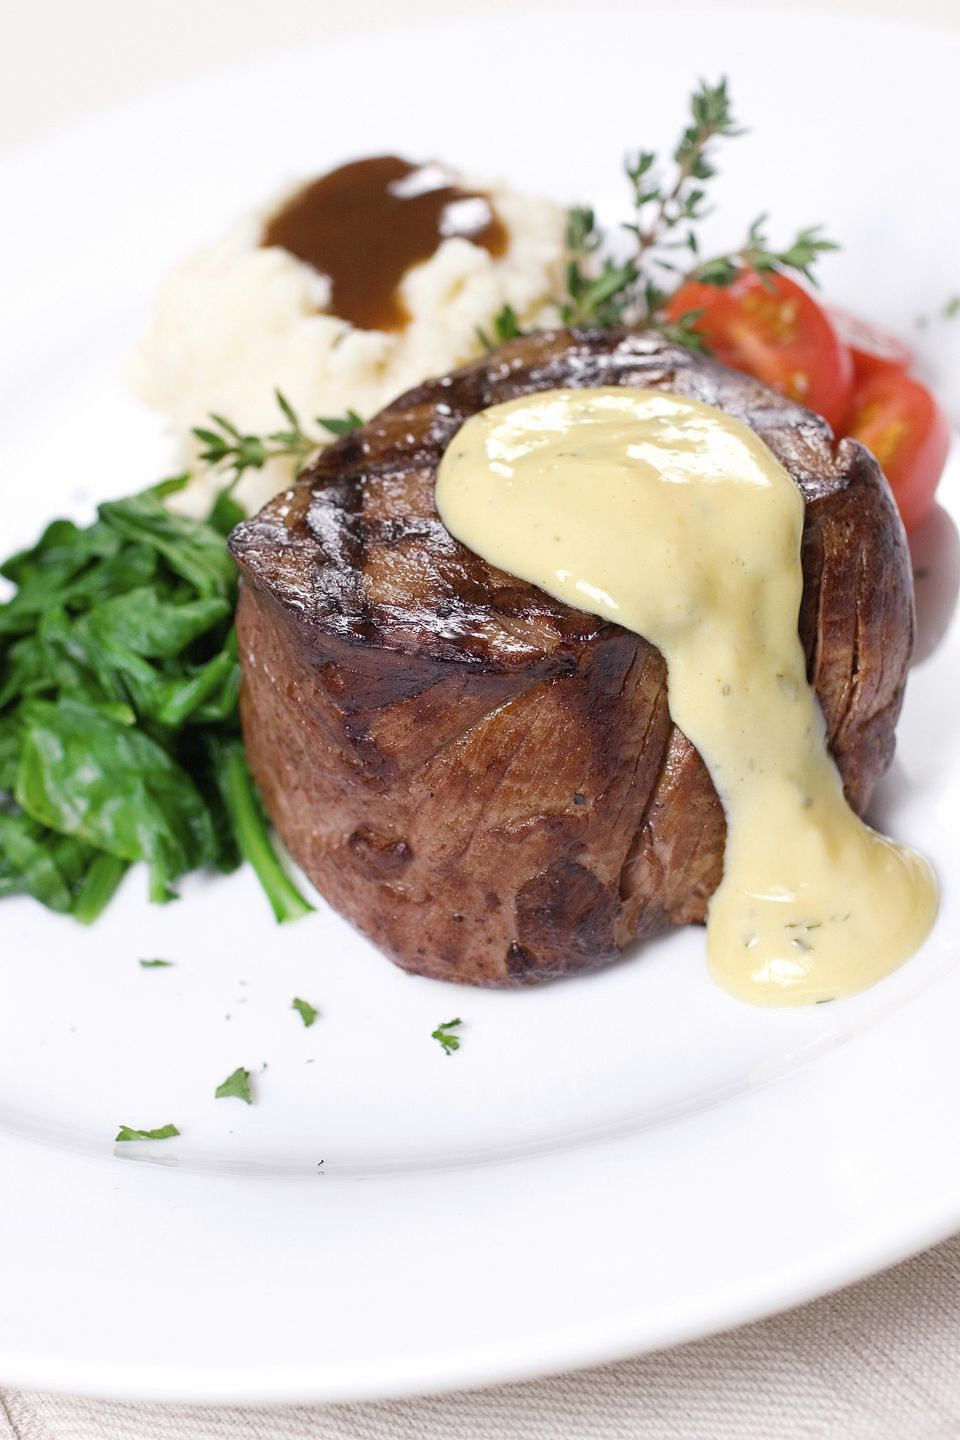 Grilled Filet Mignon with Bernaise Sauce